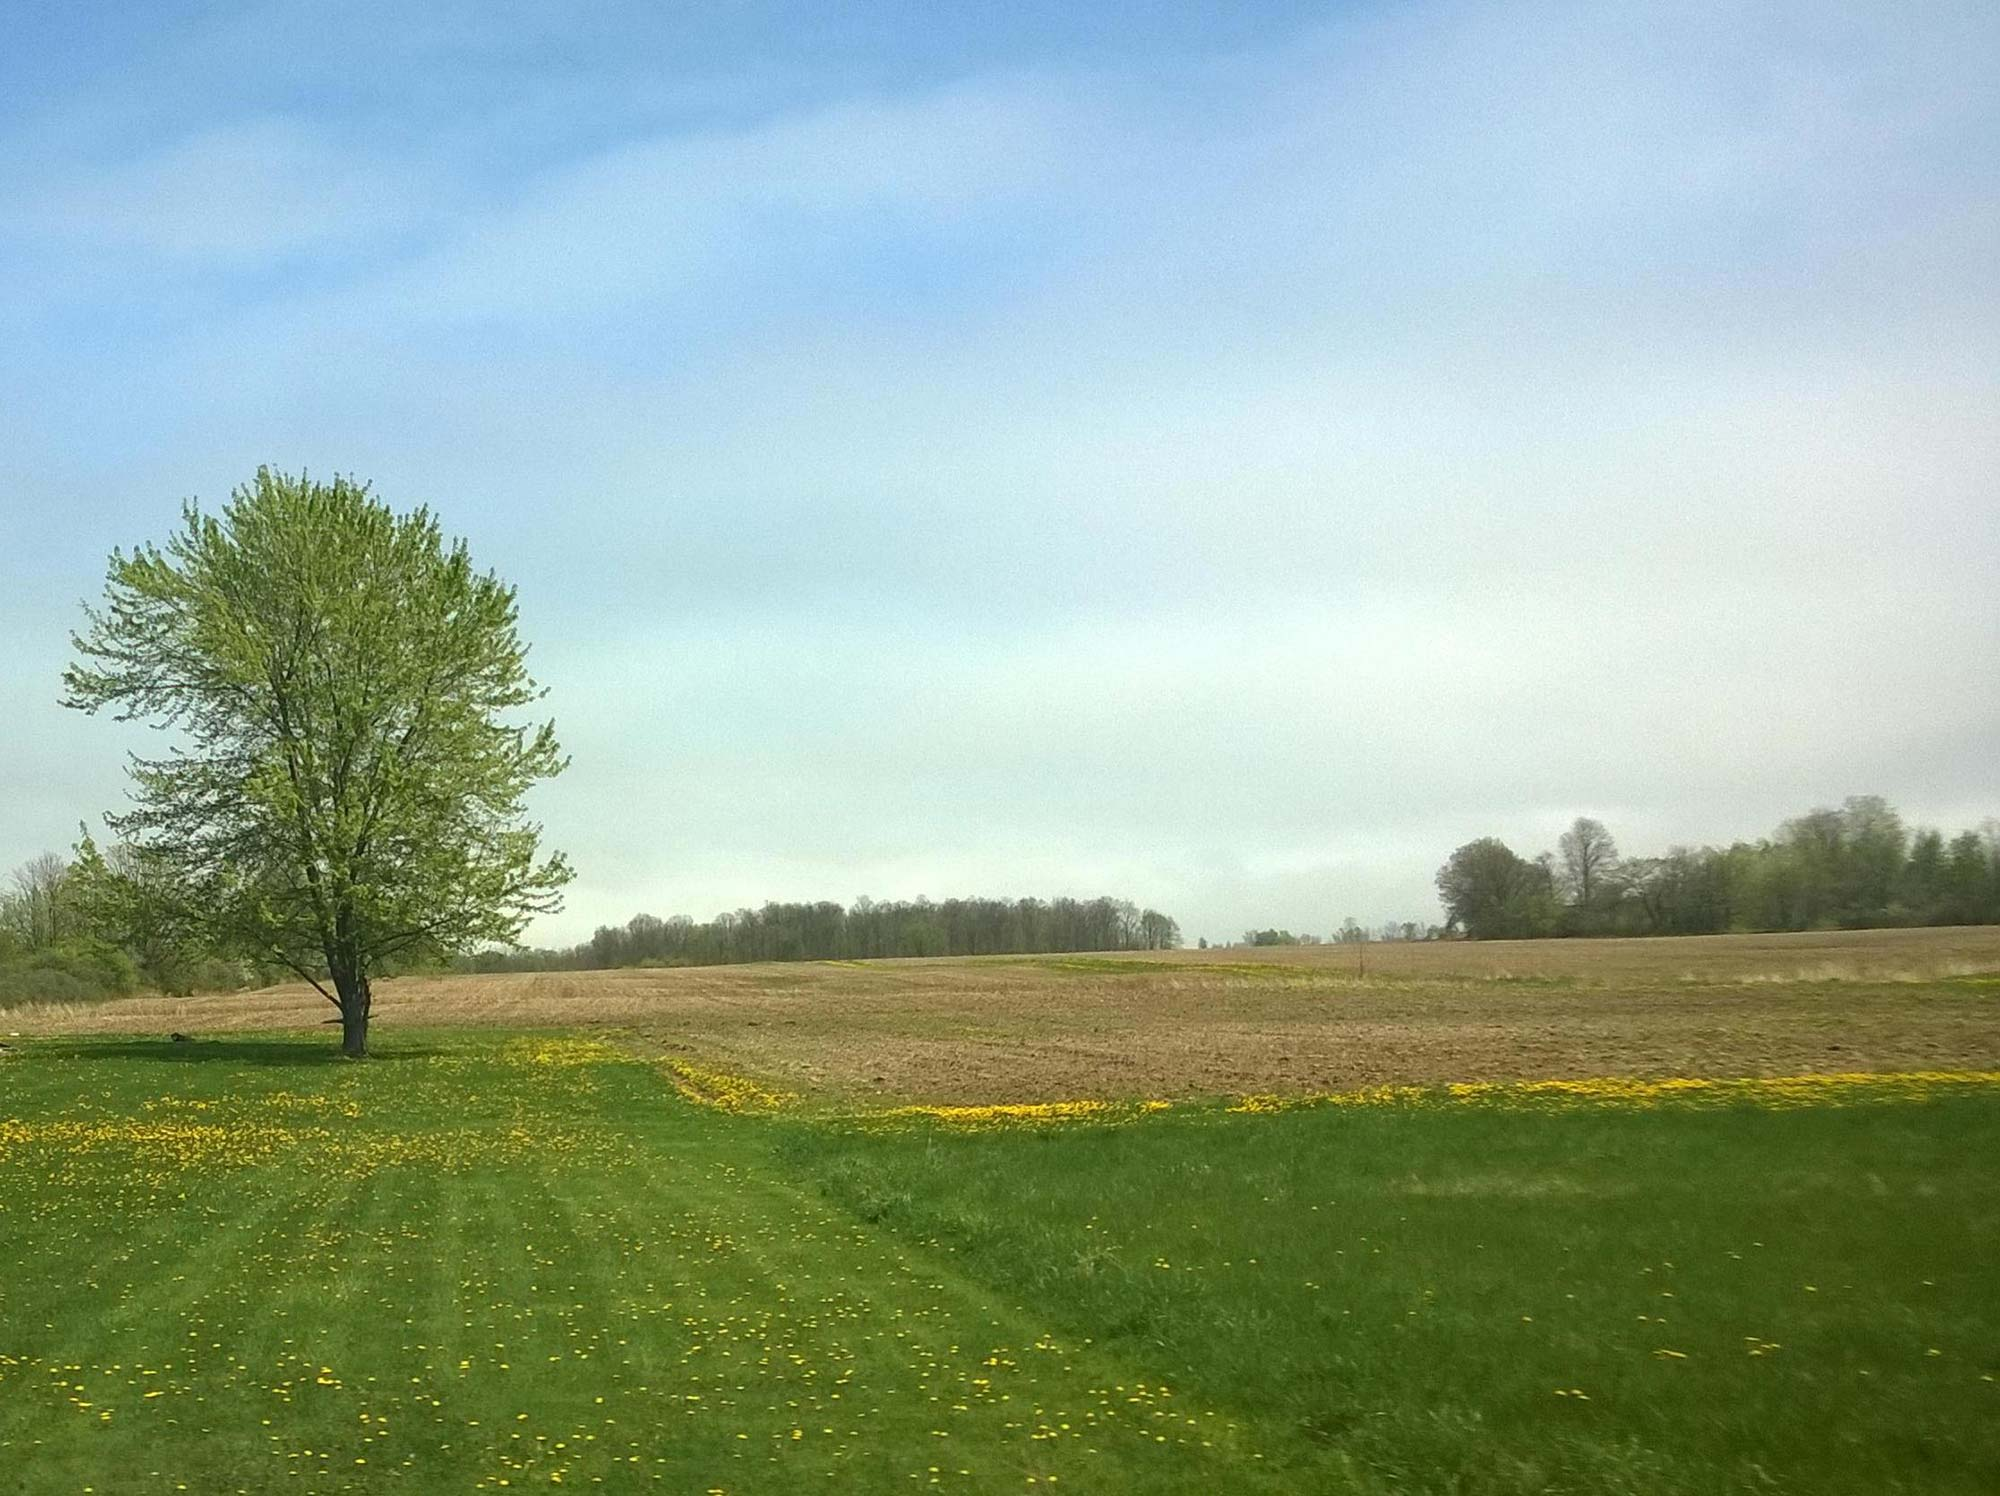 image of clear field with tree or object for plane approaching - Negative target fixation blog post - Greg Olson